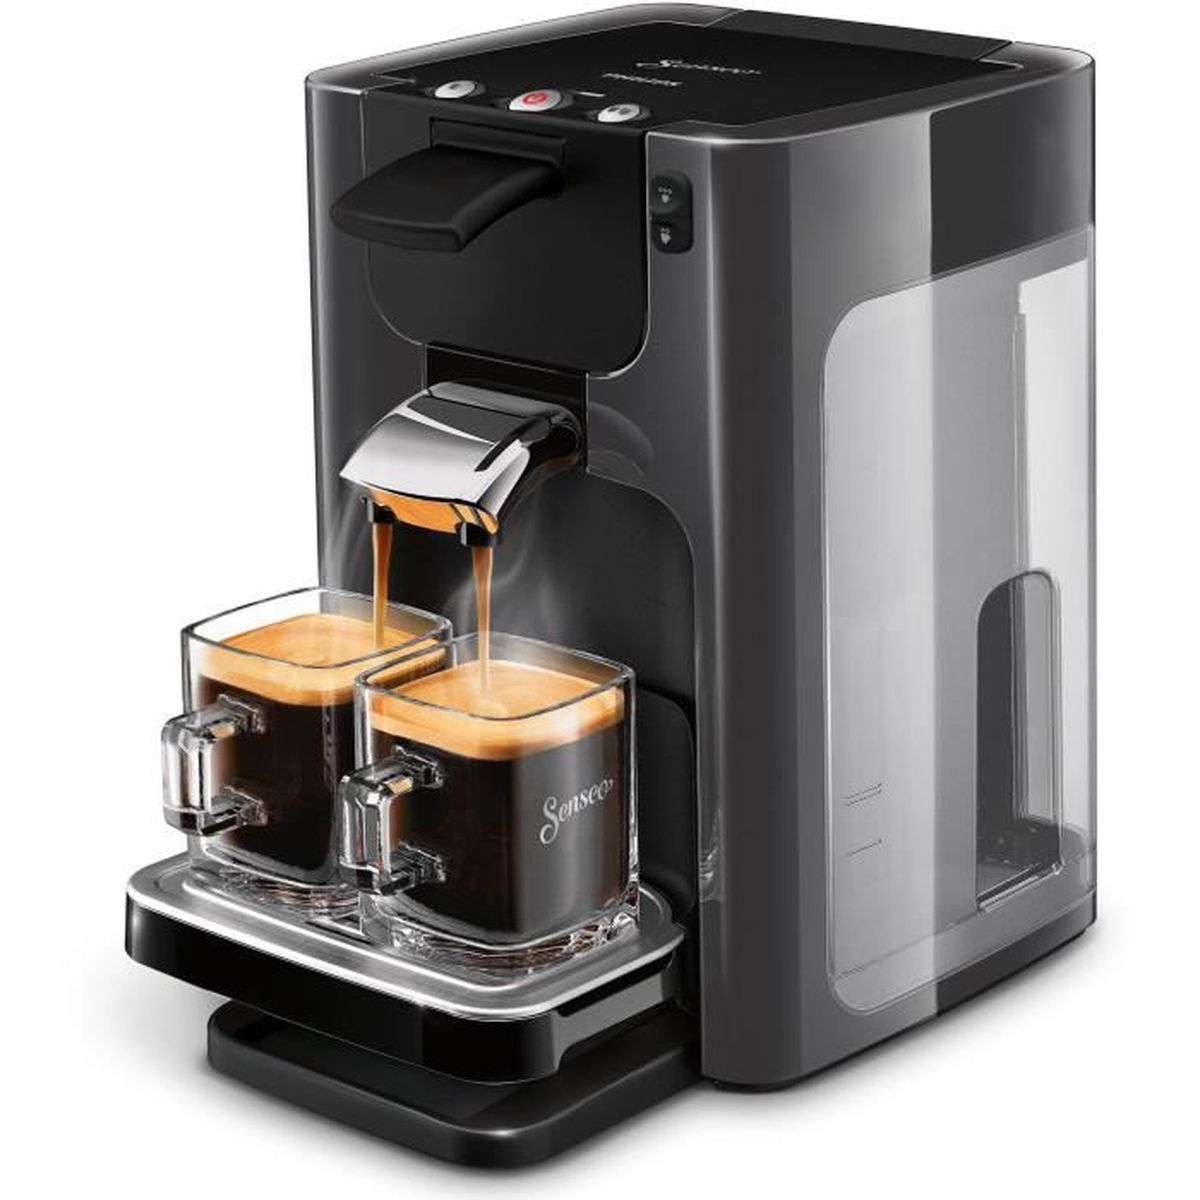 cafeti re philips senseo hd7866 21 quadr achat vente machine expresso cdiscount. Black Bedroom Furniture Sets. Home Design Ideas